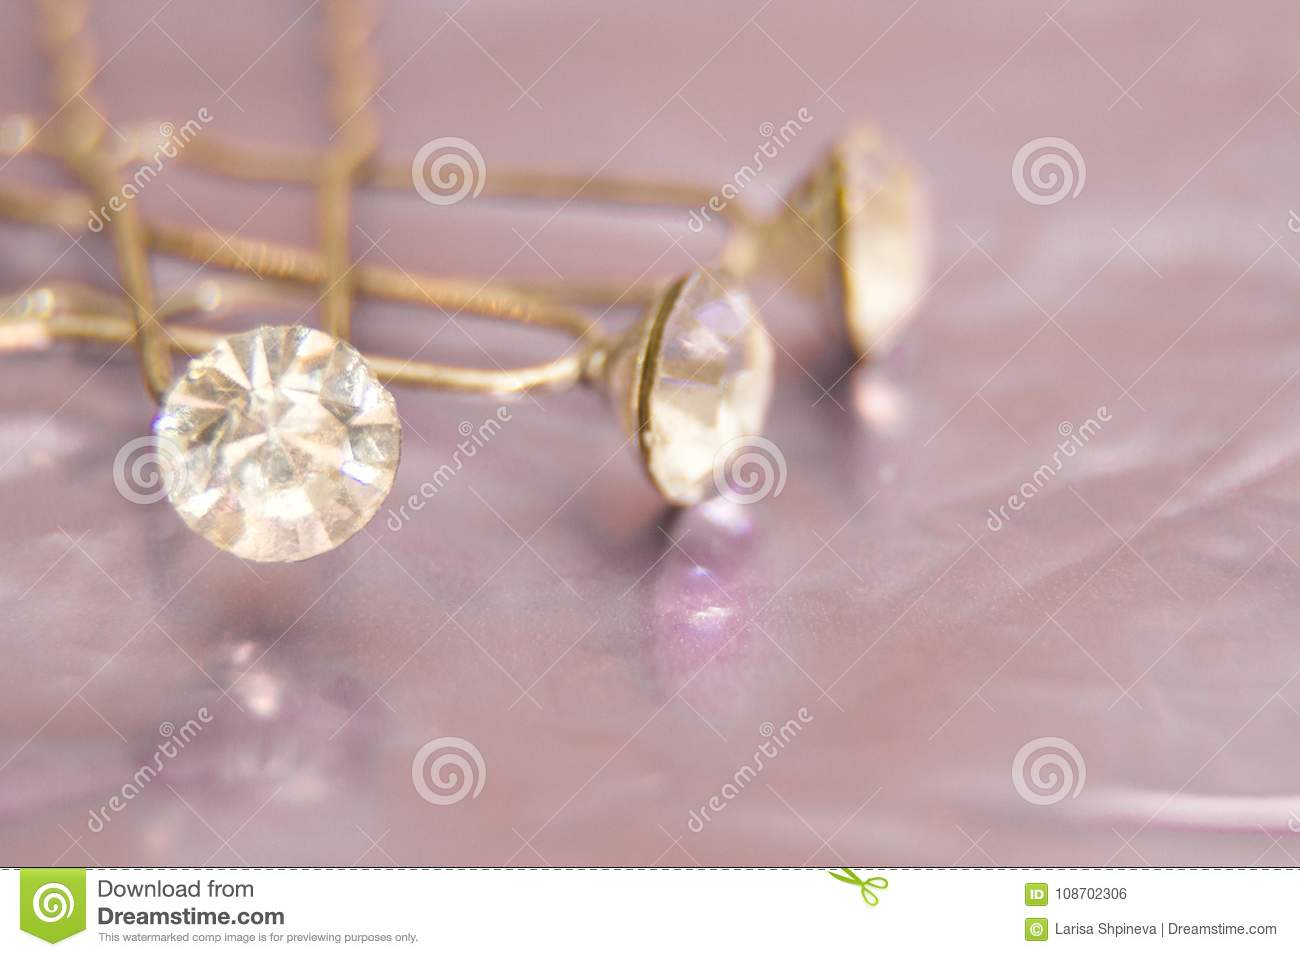 Beautiful hairpin decorated white diamonds for hairstyle on pink abstract bokeh background, hair accessories or wedding